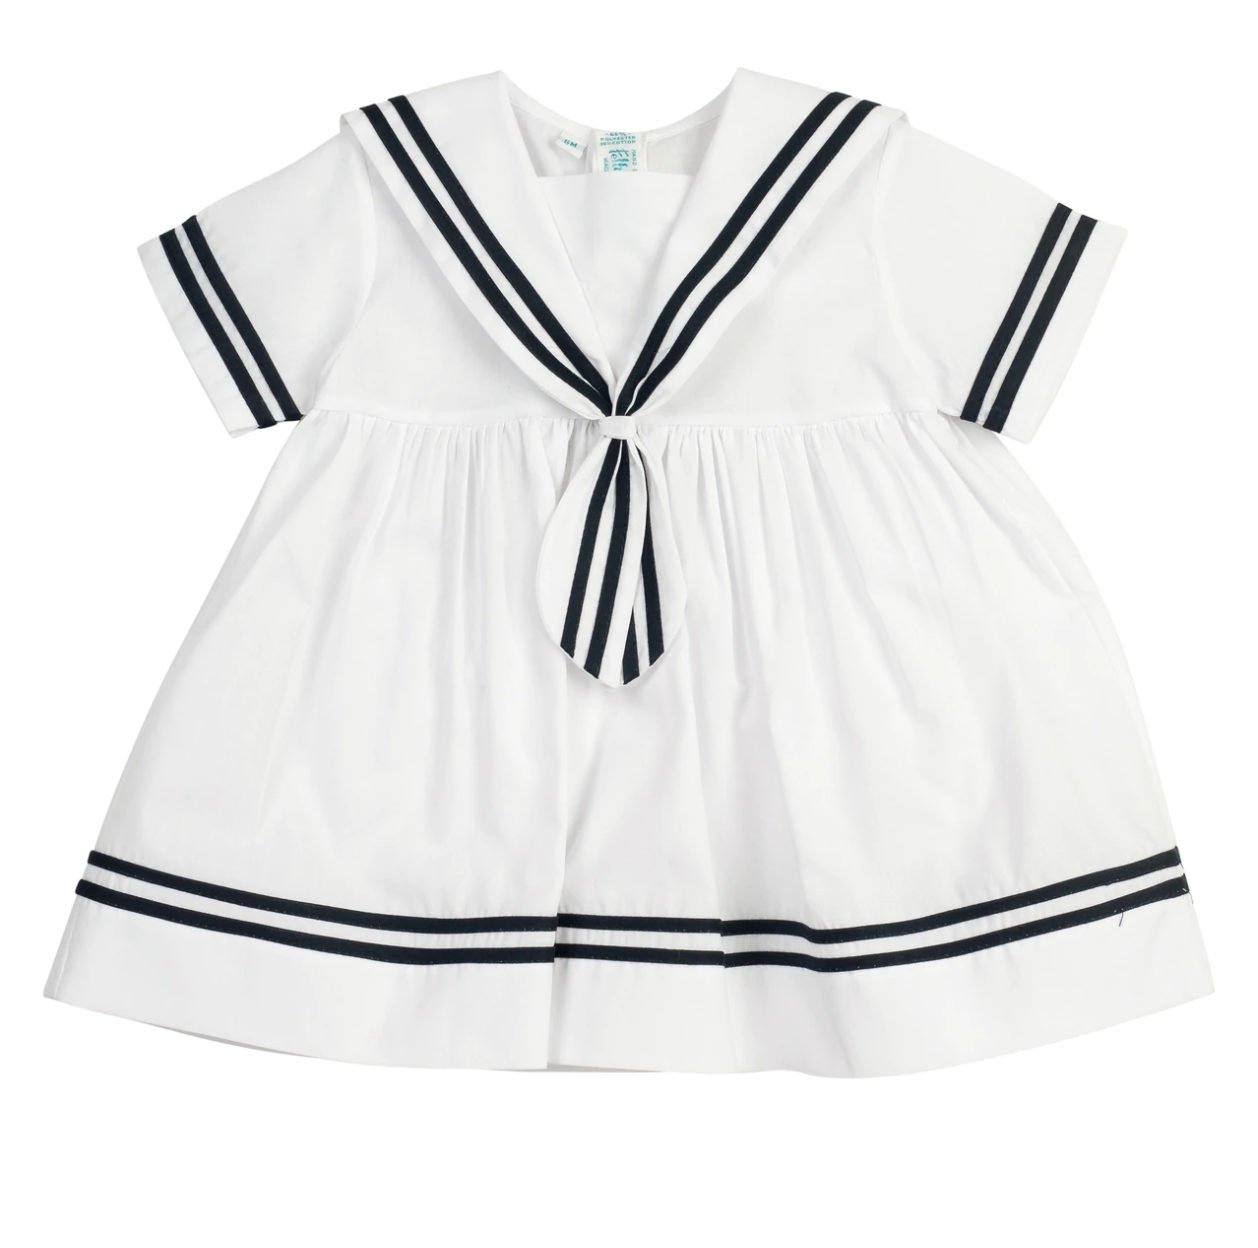 Tips for Buying Vintage Baby & Children's Clothing